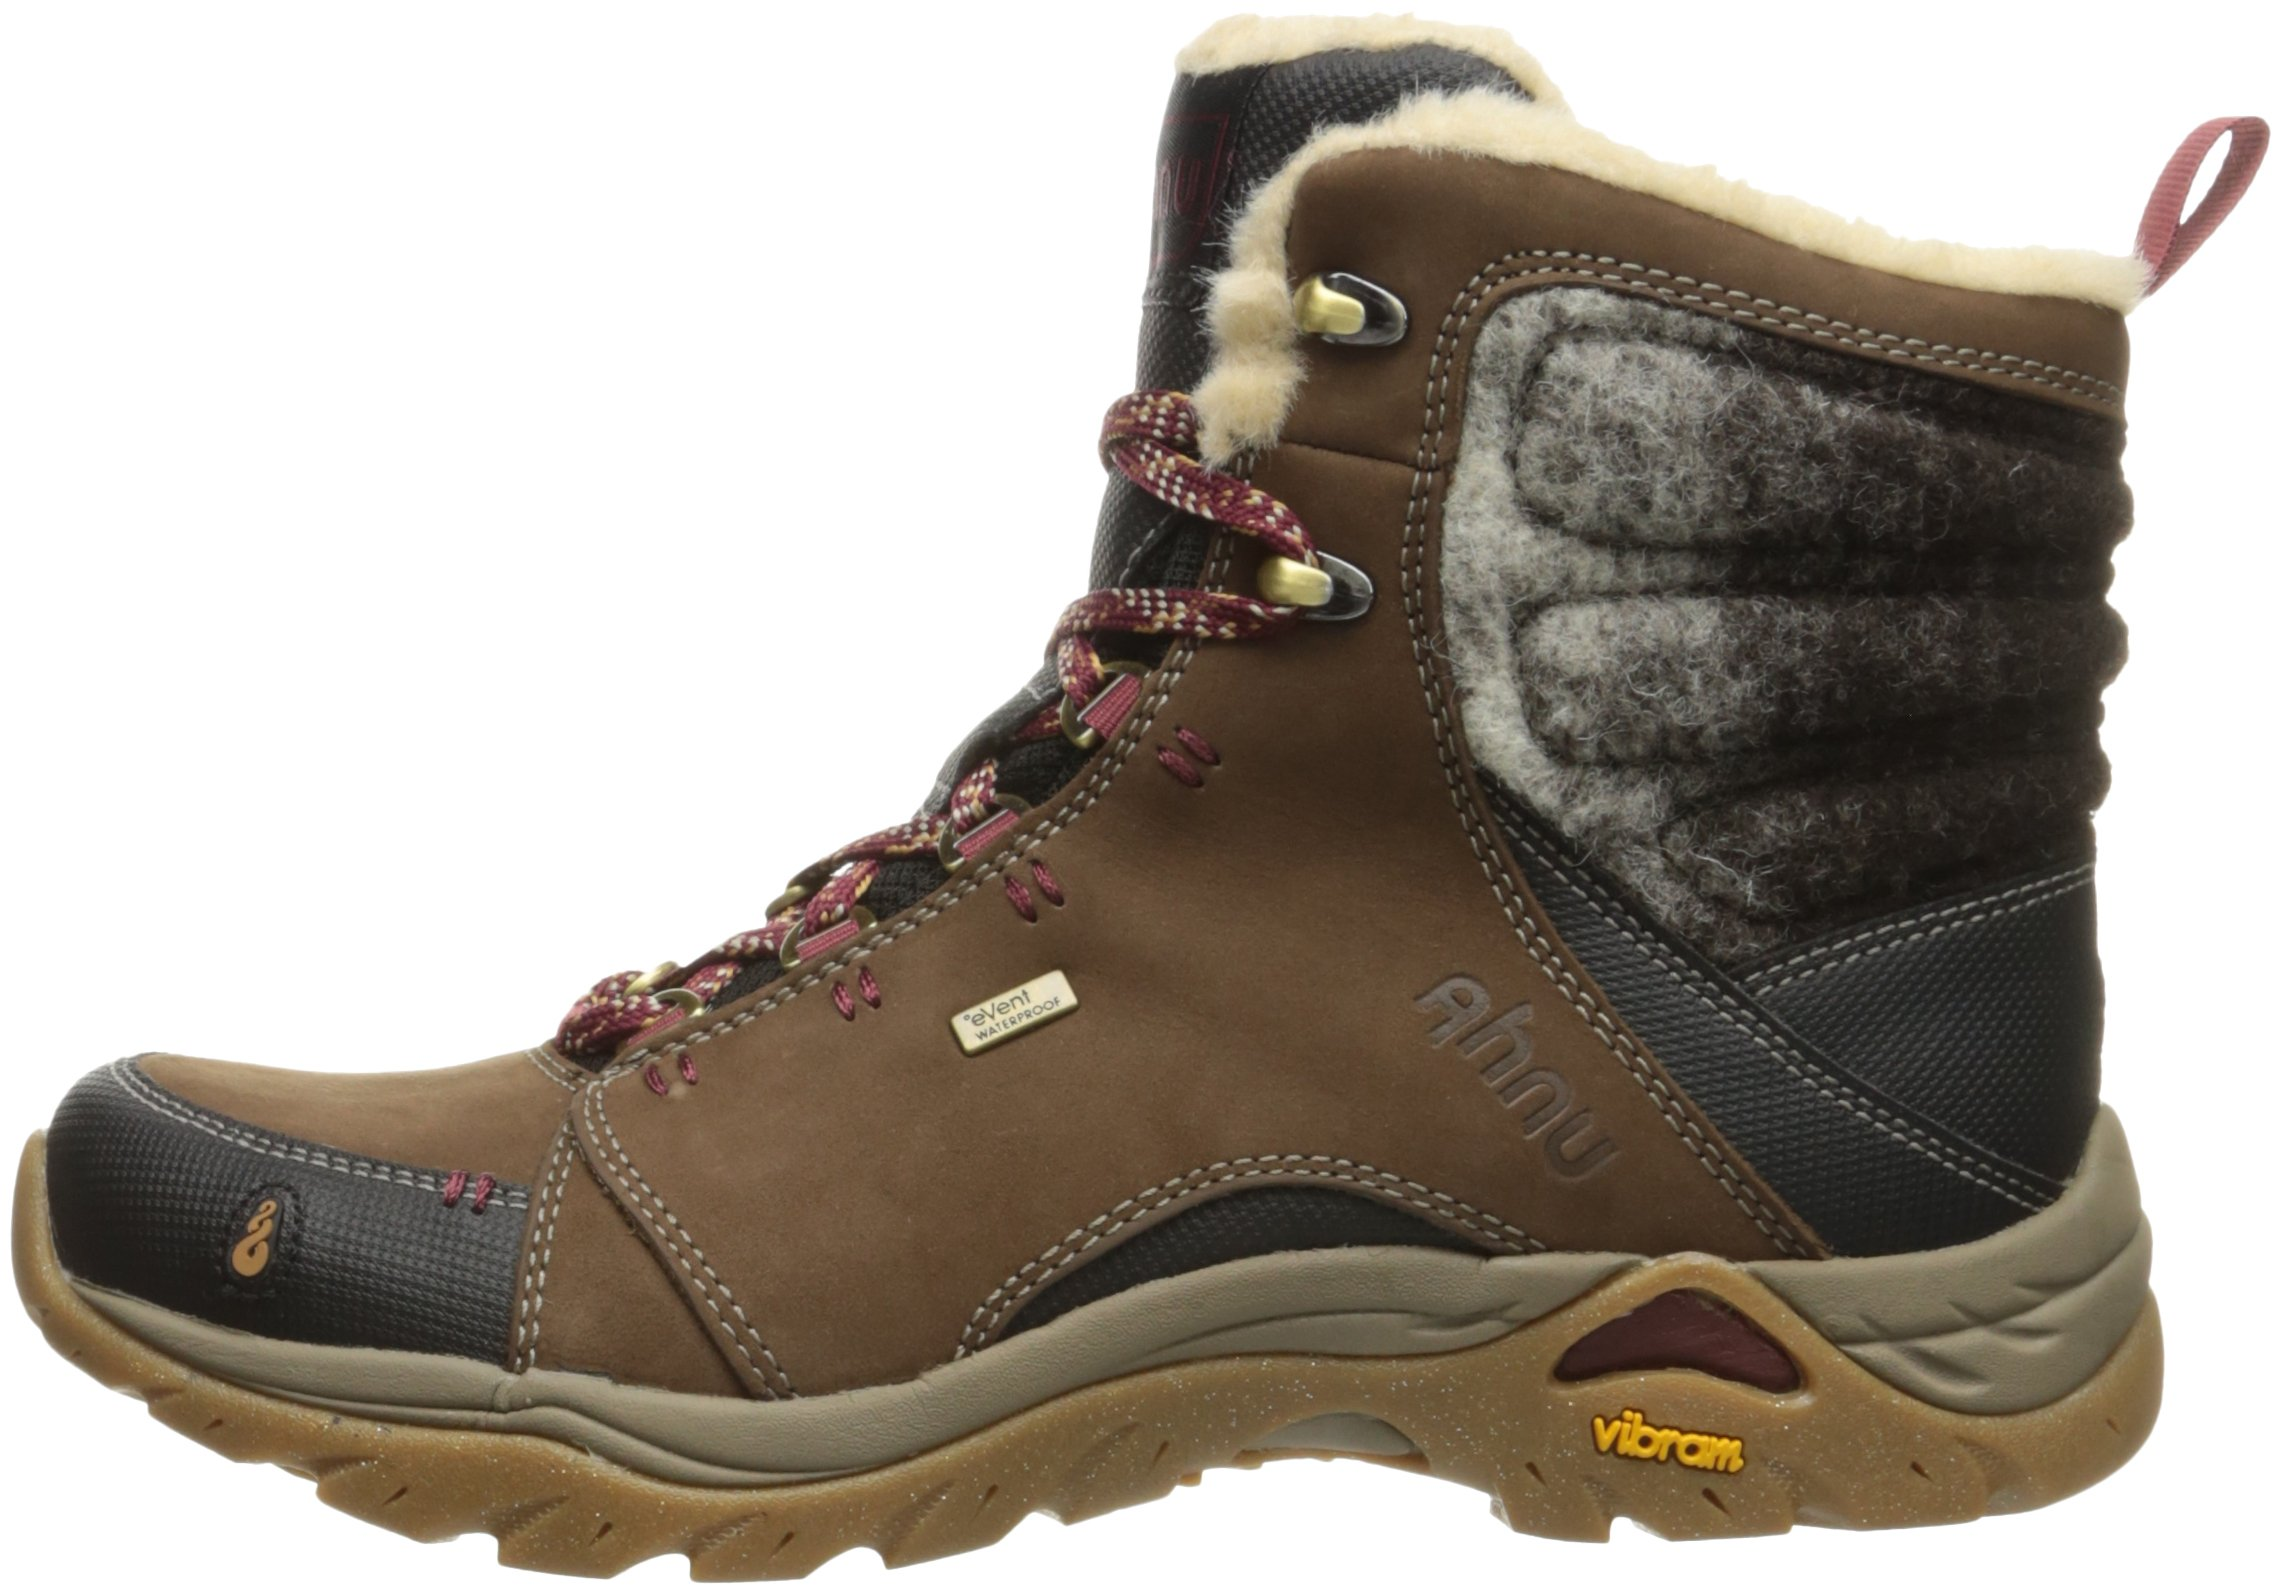 Ahnu Women's Montara Waterproof Boot,Corduroy,9 M US by Ahnu (Image #5)